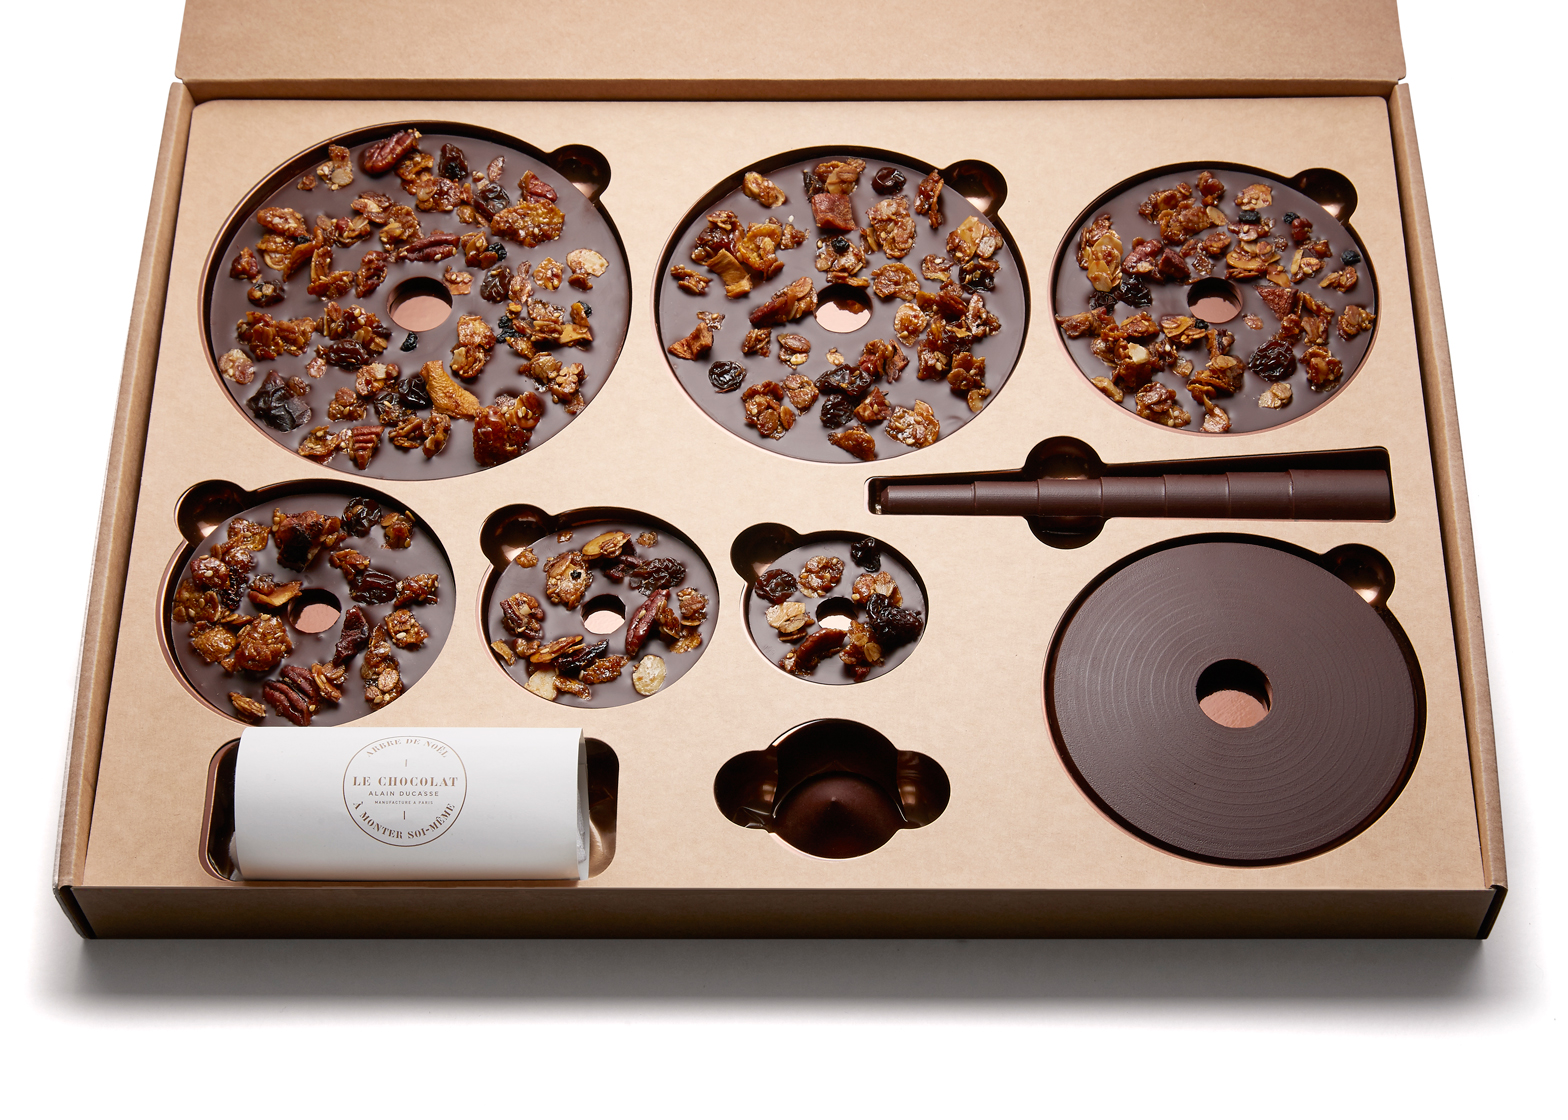 Flatpack chocolate tree by Alain Ducasse